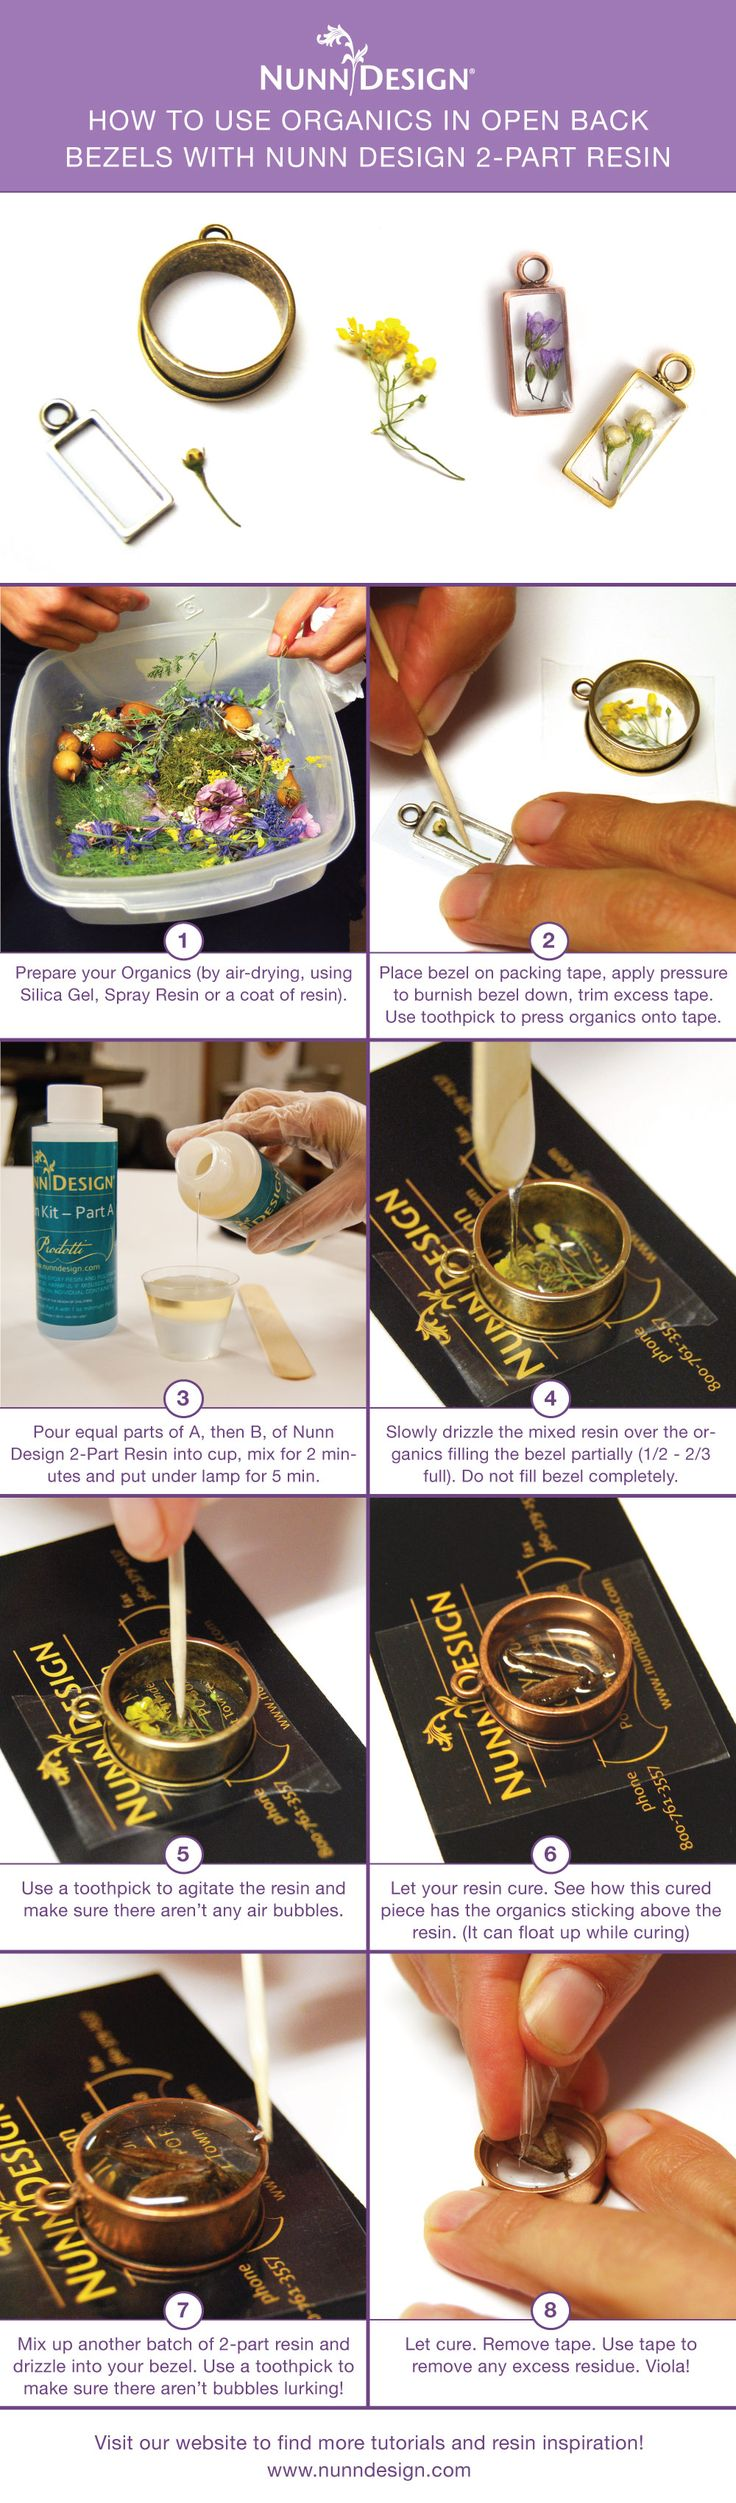 Learn how to prepare organics to add into Nunn Design 2-Part Resin with these helpful tips. Visit the blog for a full tutorial: www.nunndesign.co... jewelry woman - http://amzn.to/2iQZrK5